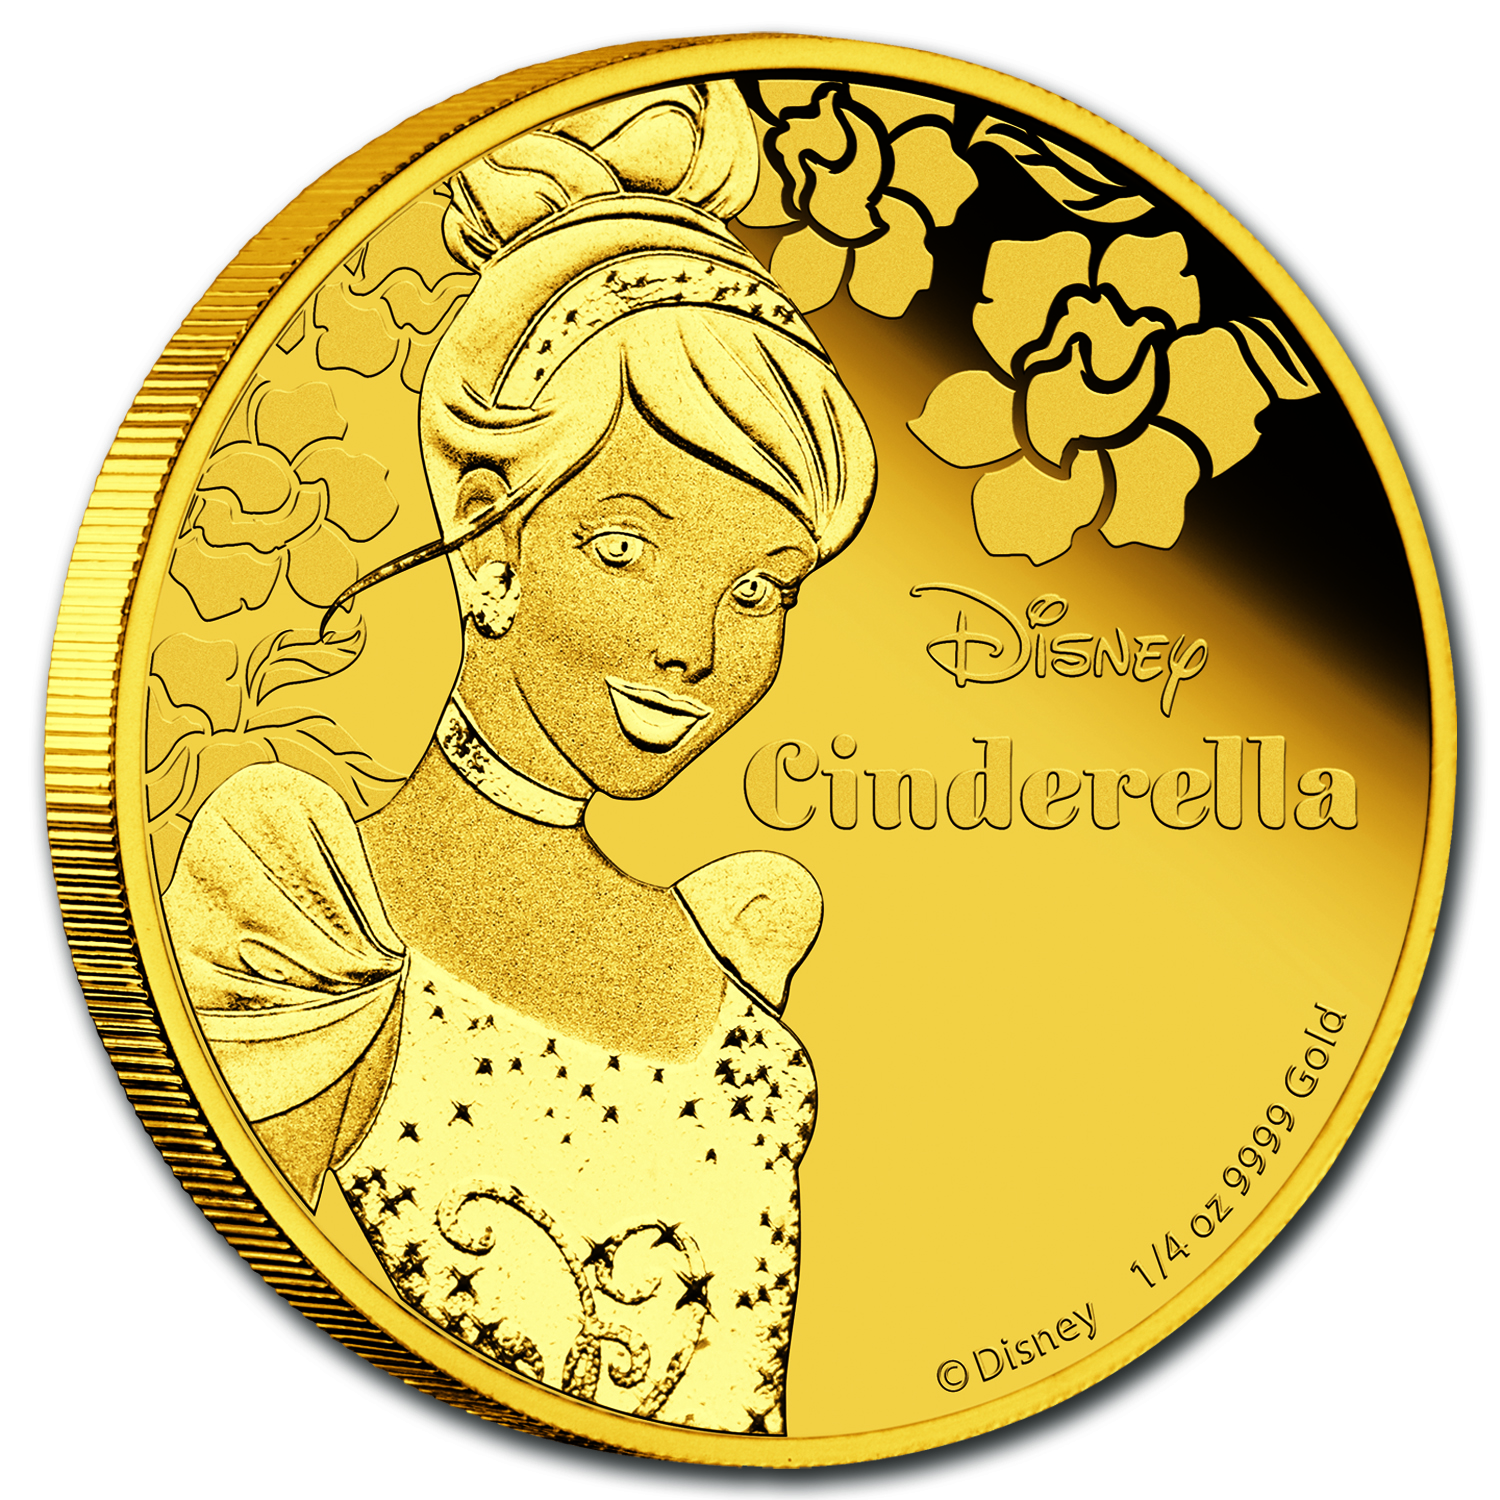 2015 Niue 1/4 oz Proof Gold $25 Disney Princess - Cinderella